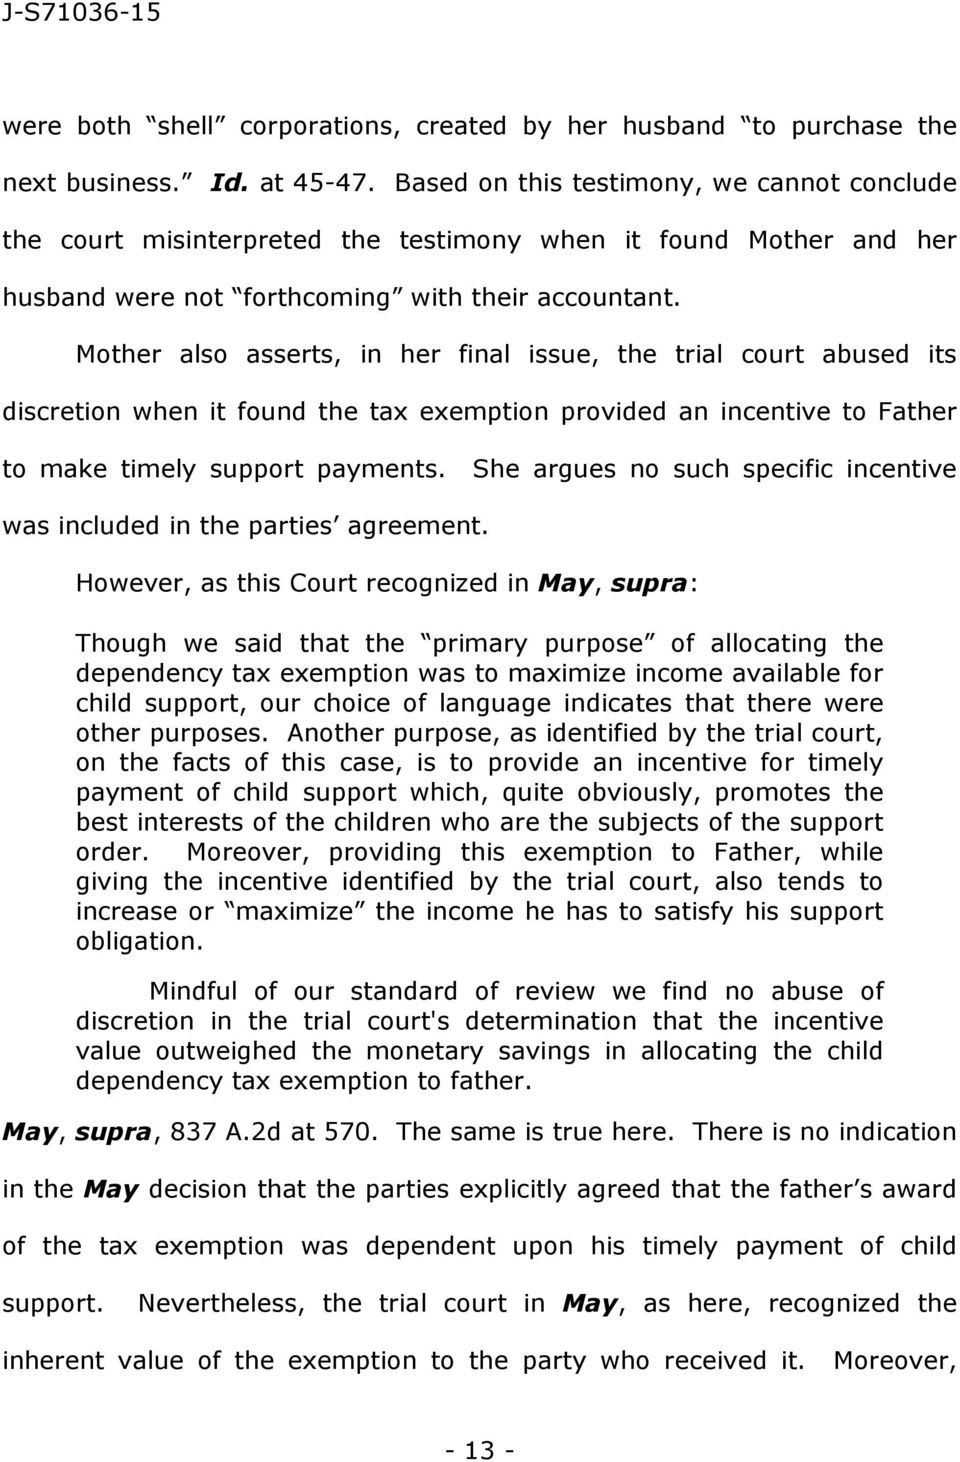 Mother also asserts, in her final issue, the trial court abused its discretion when it found the tax exemption provided an incentive to Father to make timely support payments.